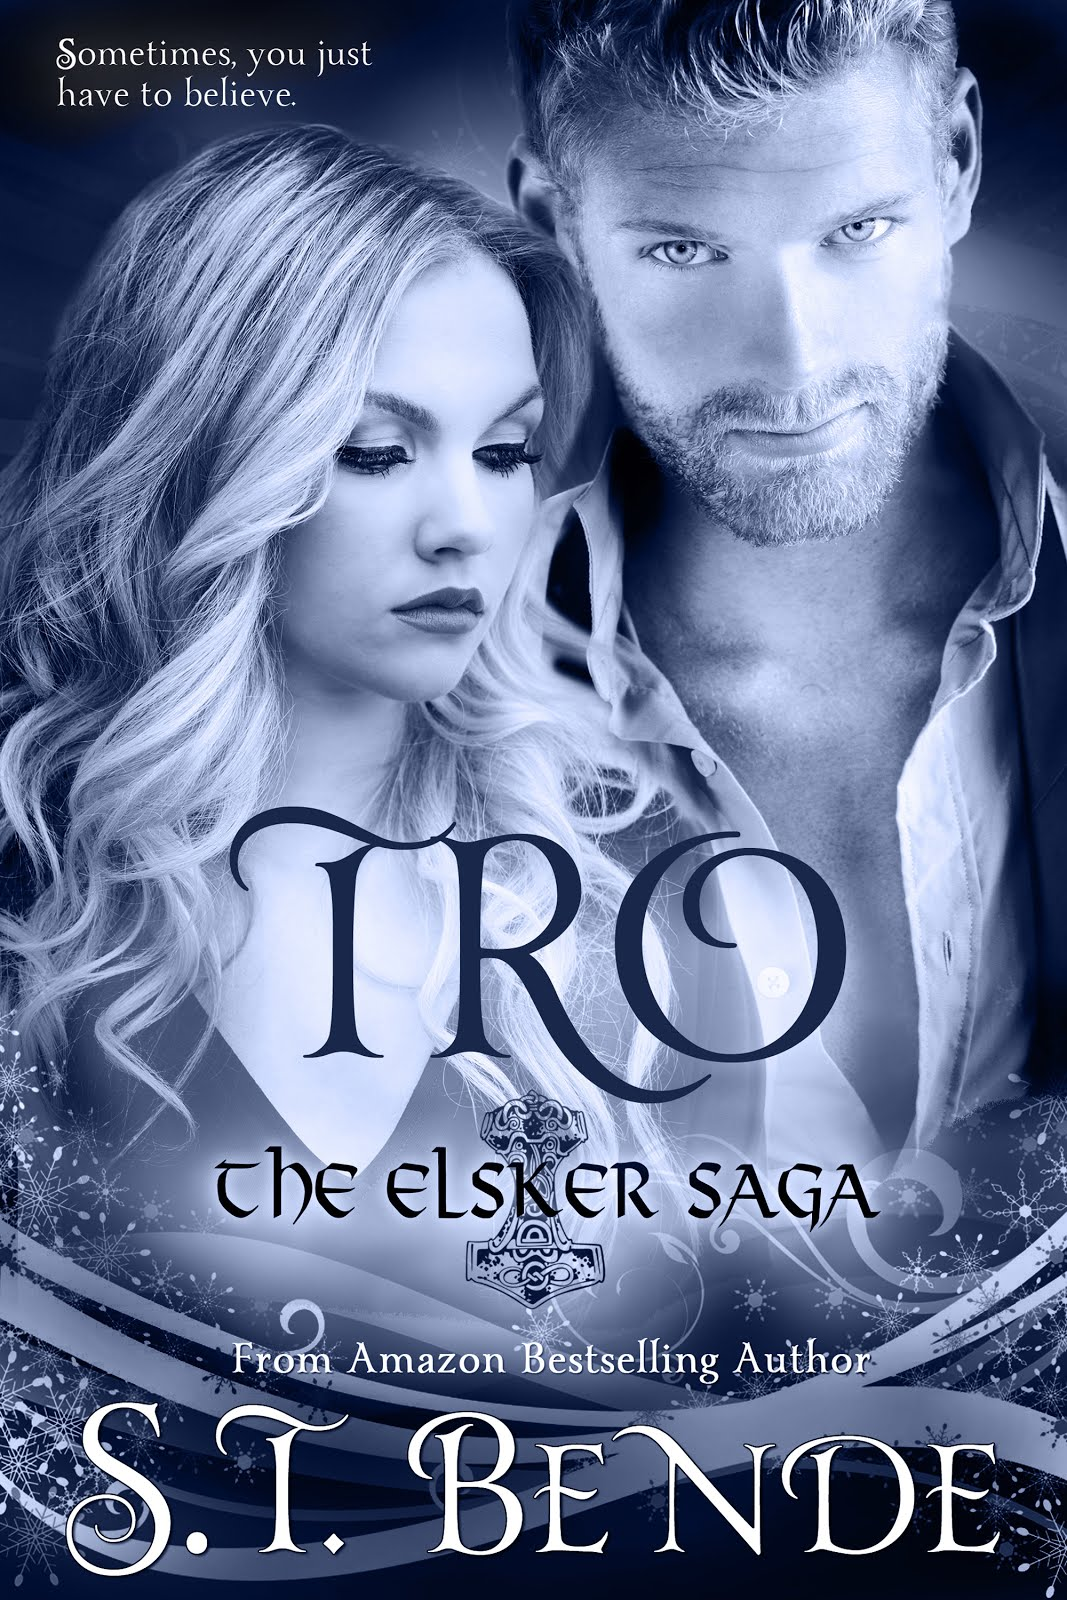 The Elsker Saga Book 3